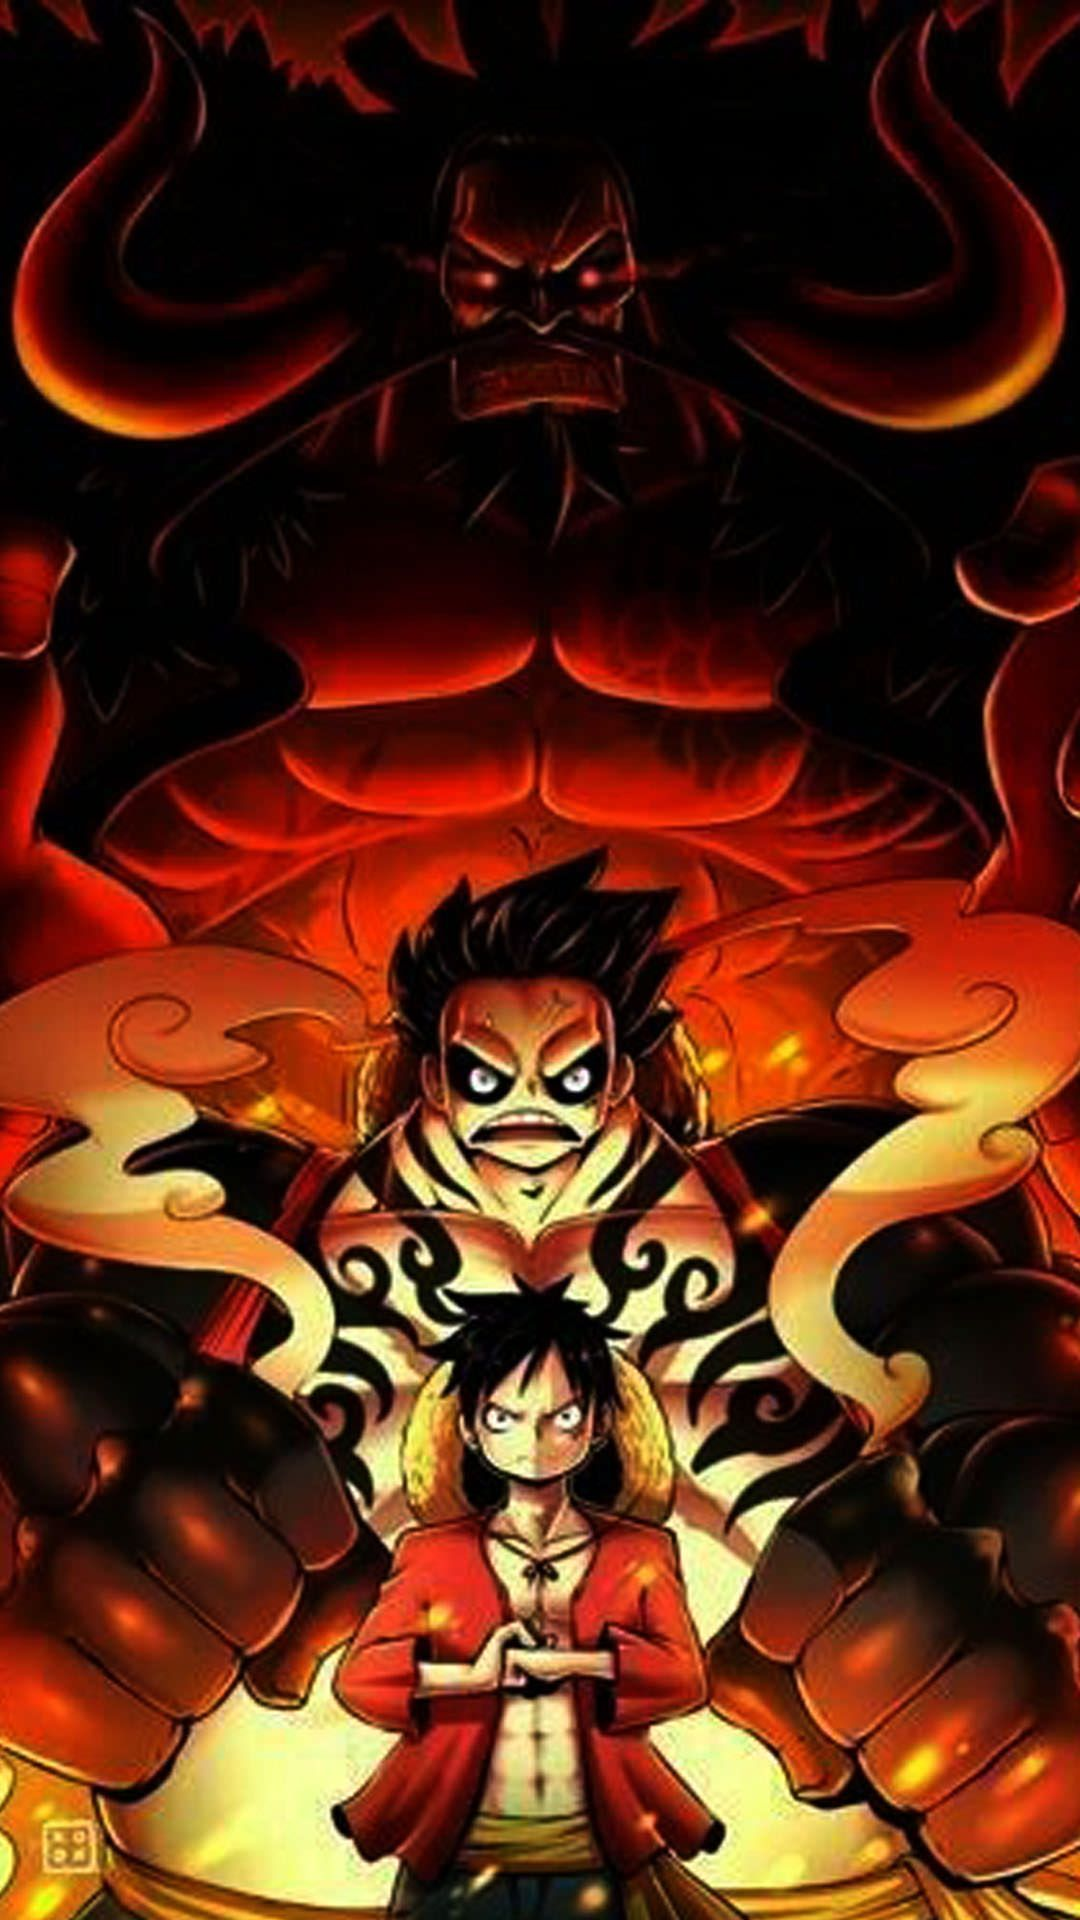 Luffy One Piece Wallpaper Android luffy one piece